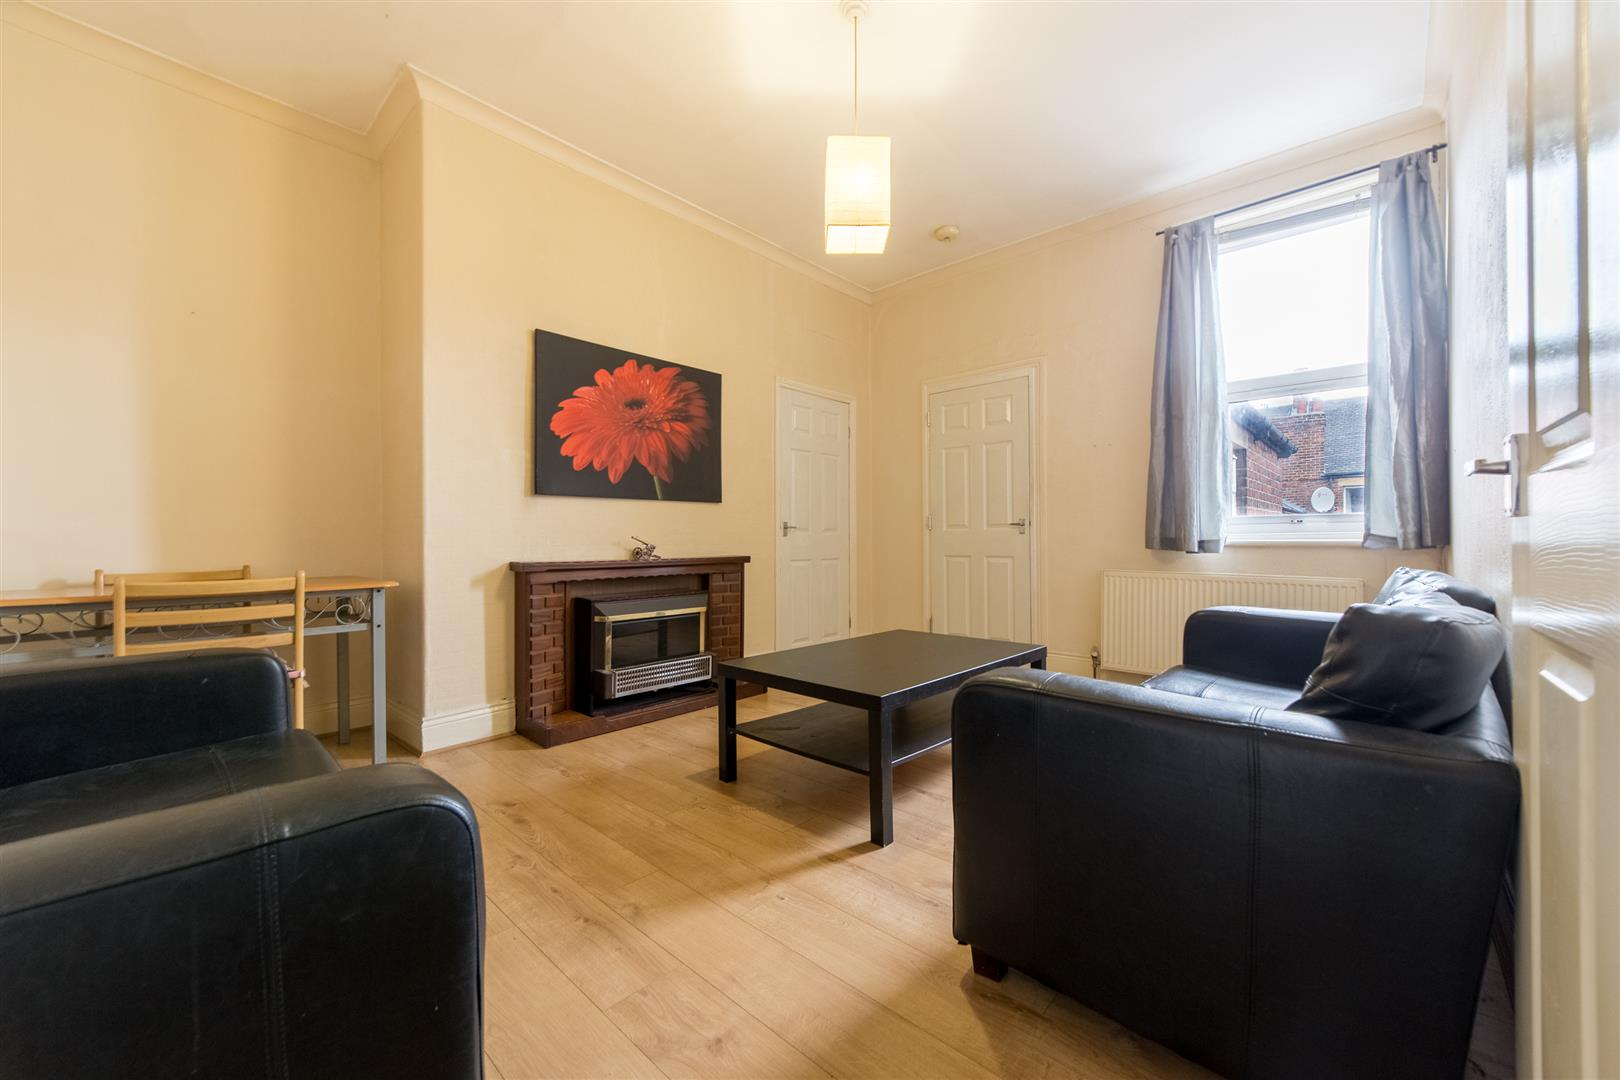 2 bed flat to rent in Newcastle Upon Tyne, NE6 5DD 0